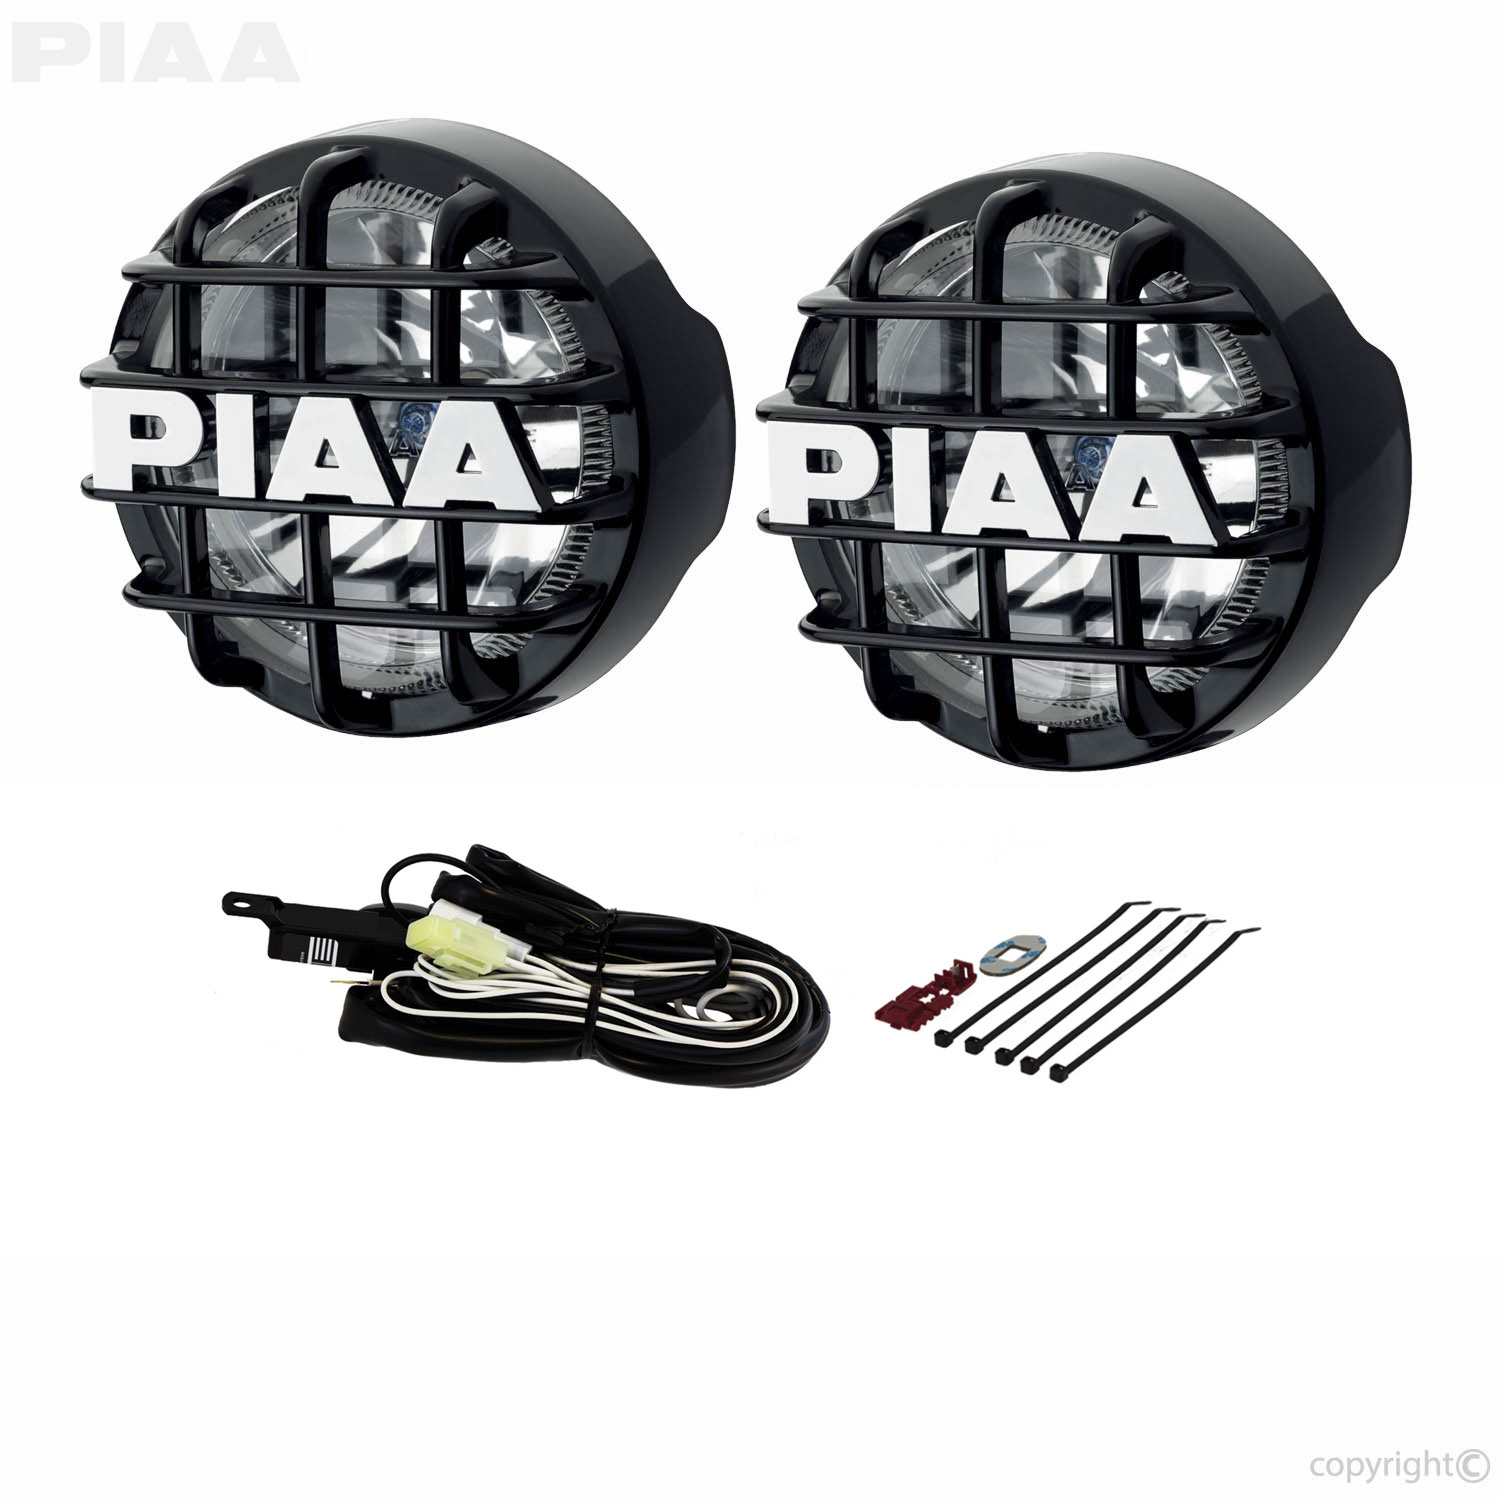 piaa 510 smr driving xtreme white plus halogen lamp kit 05192 Piaa Wiring Harness 510 smr driving xtreme white plus halogen lamp kit 05192 piaa wiring harness